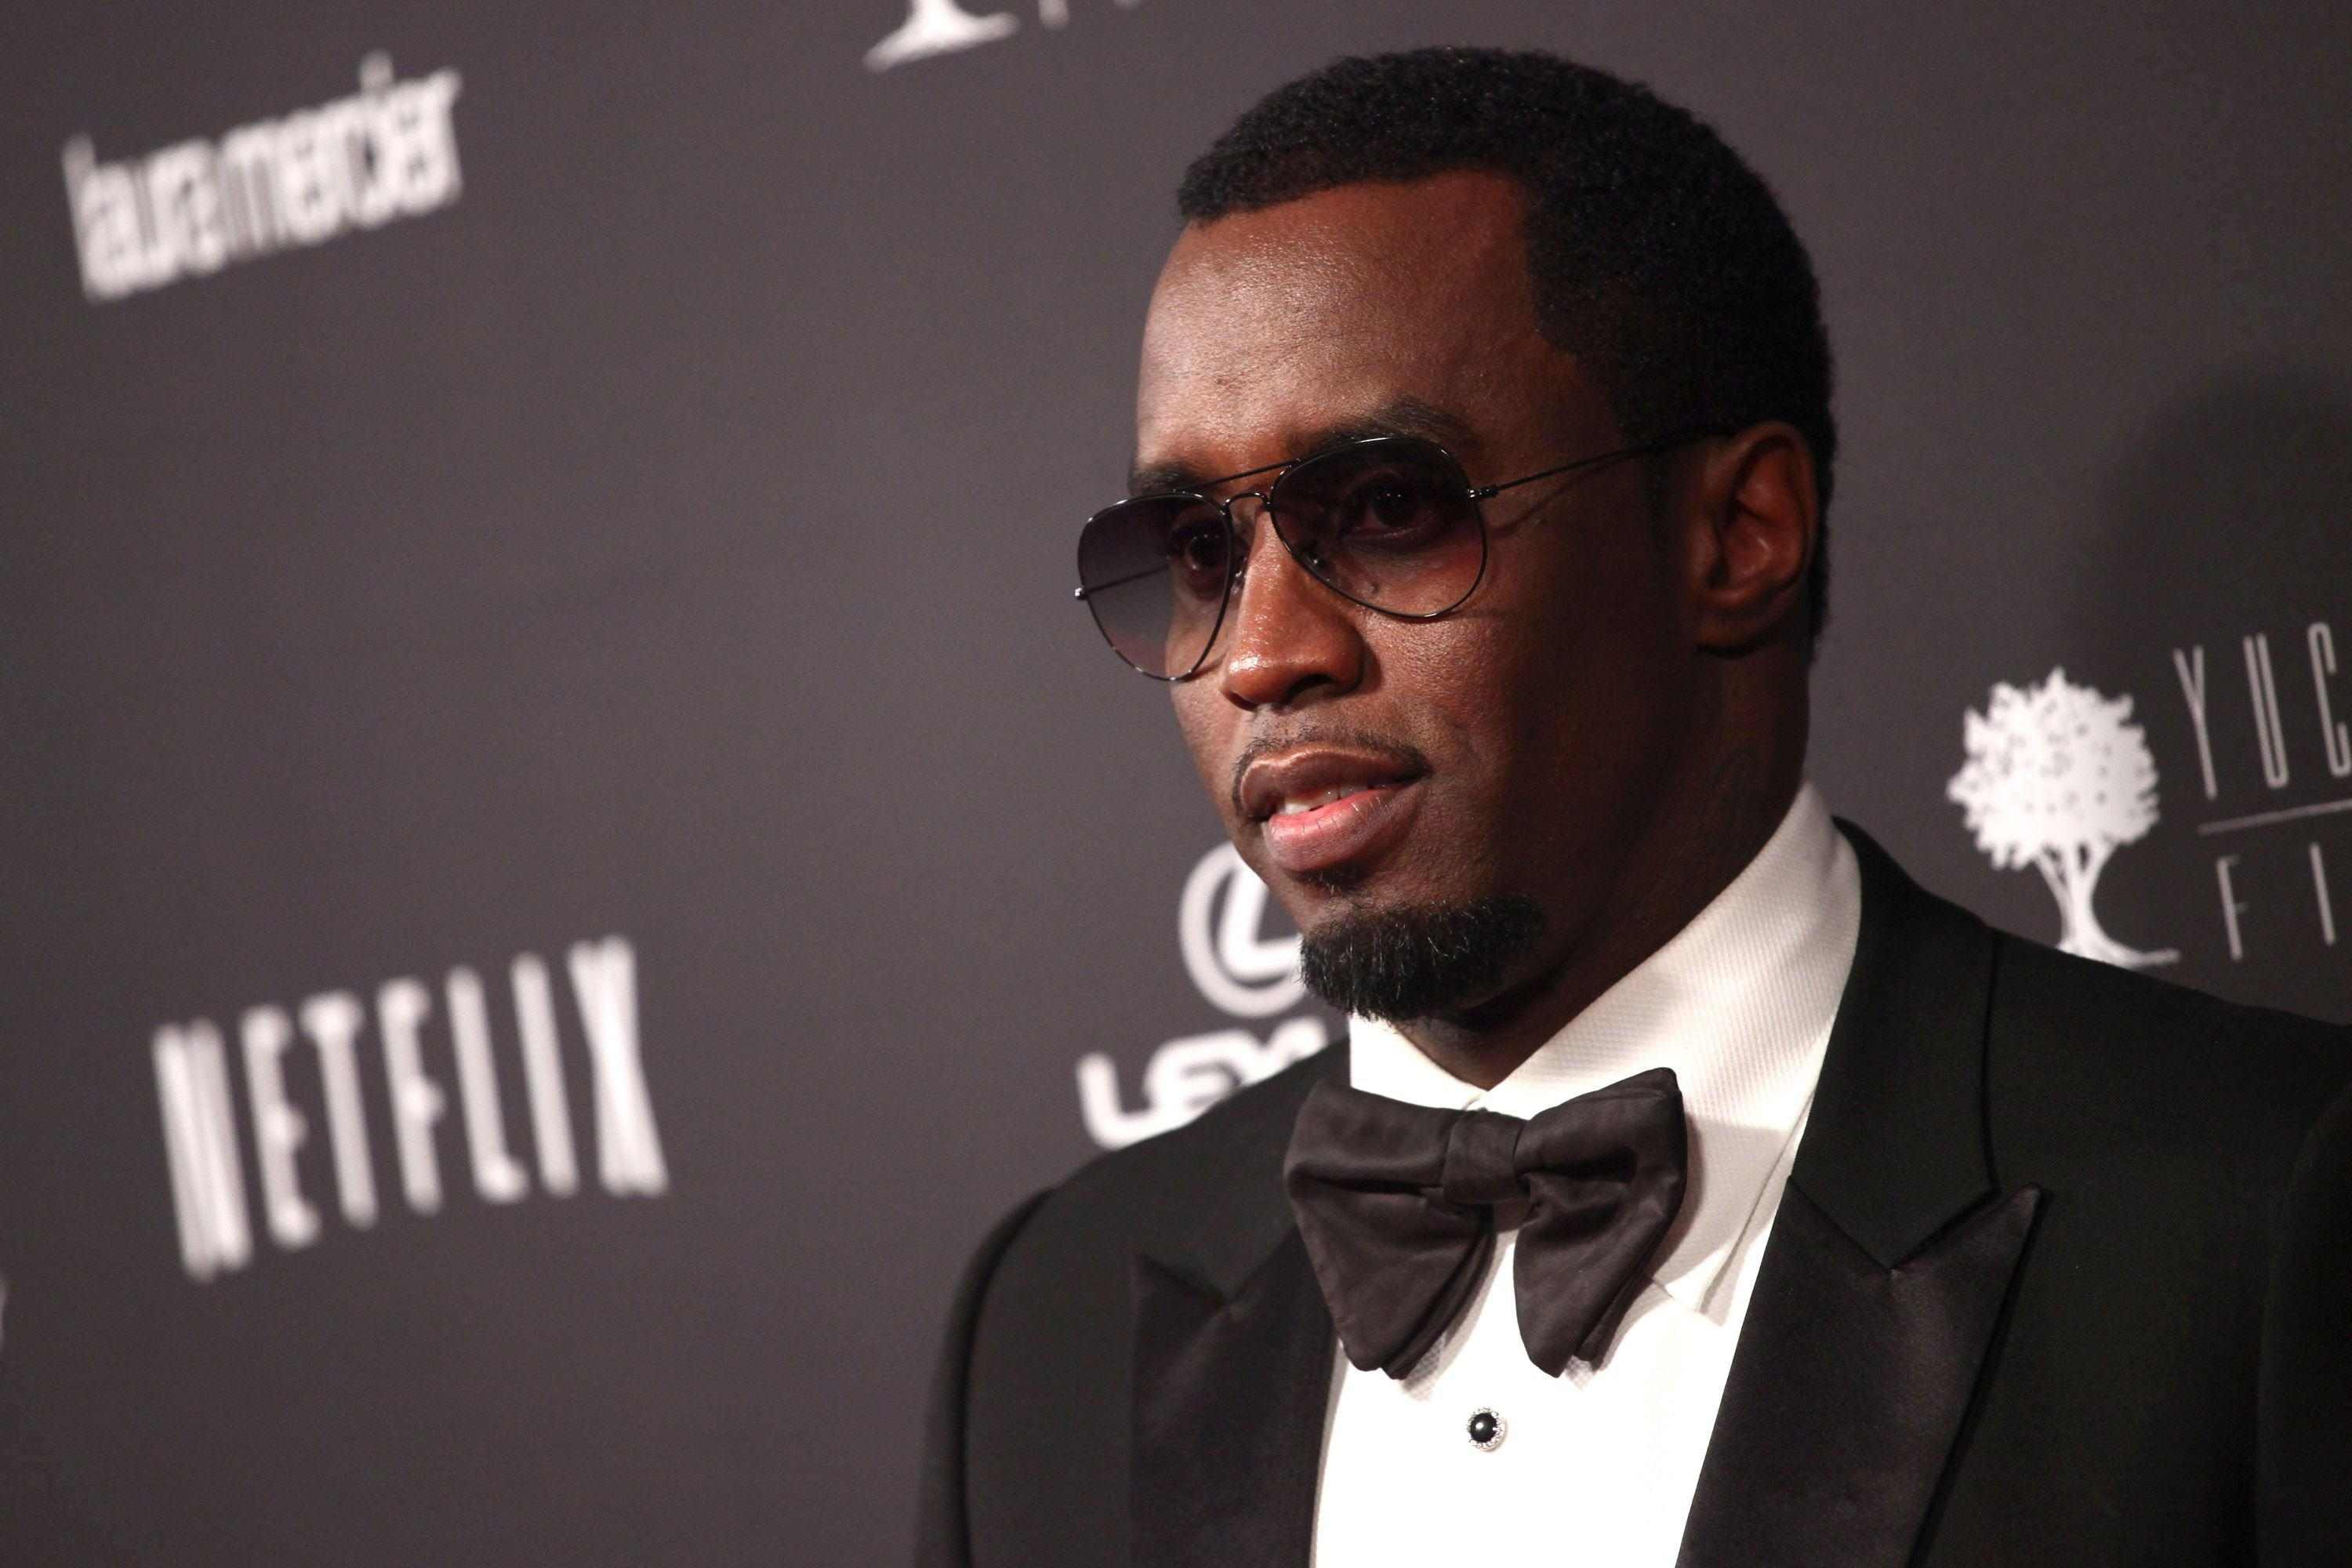 Sean Combs at the Weinstein Company's 2014 Golden Globe Awards after party on January 12, 2014 | Photo: Getty Images